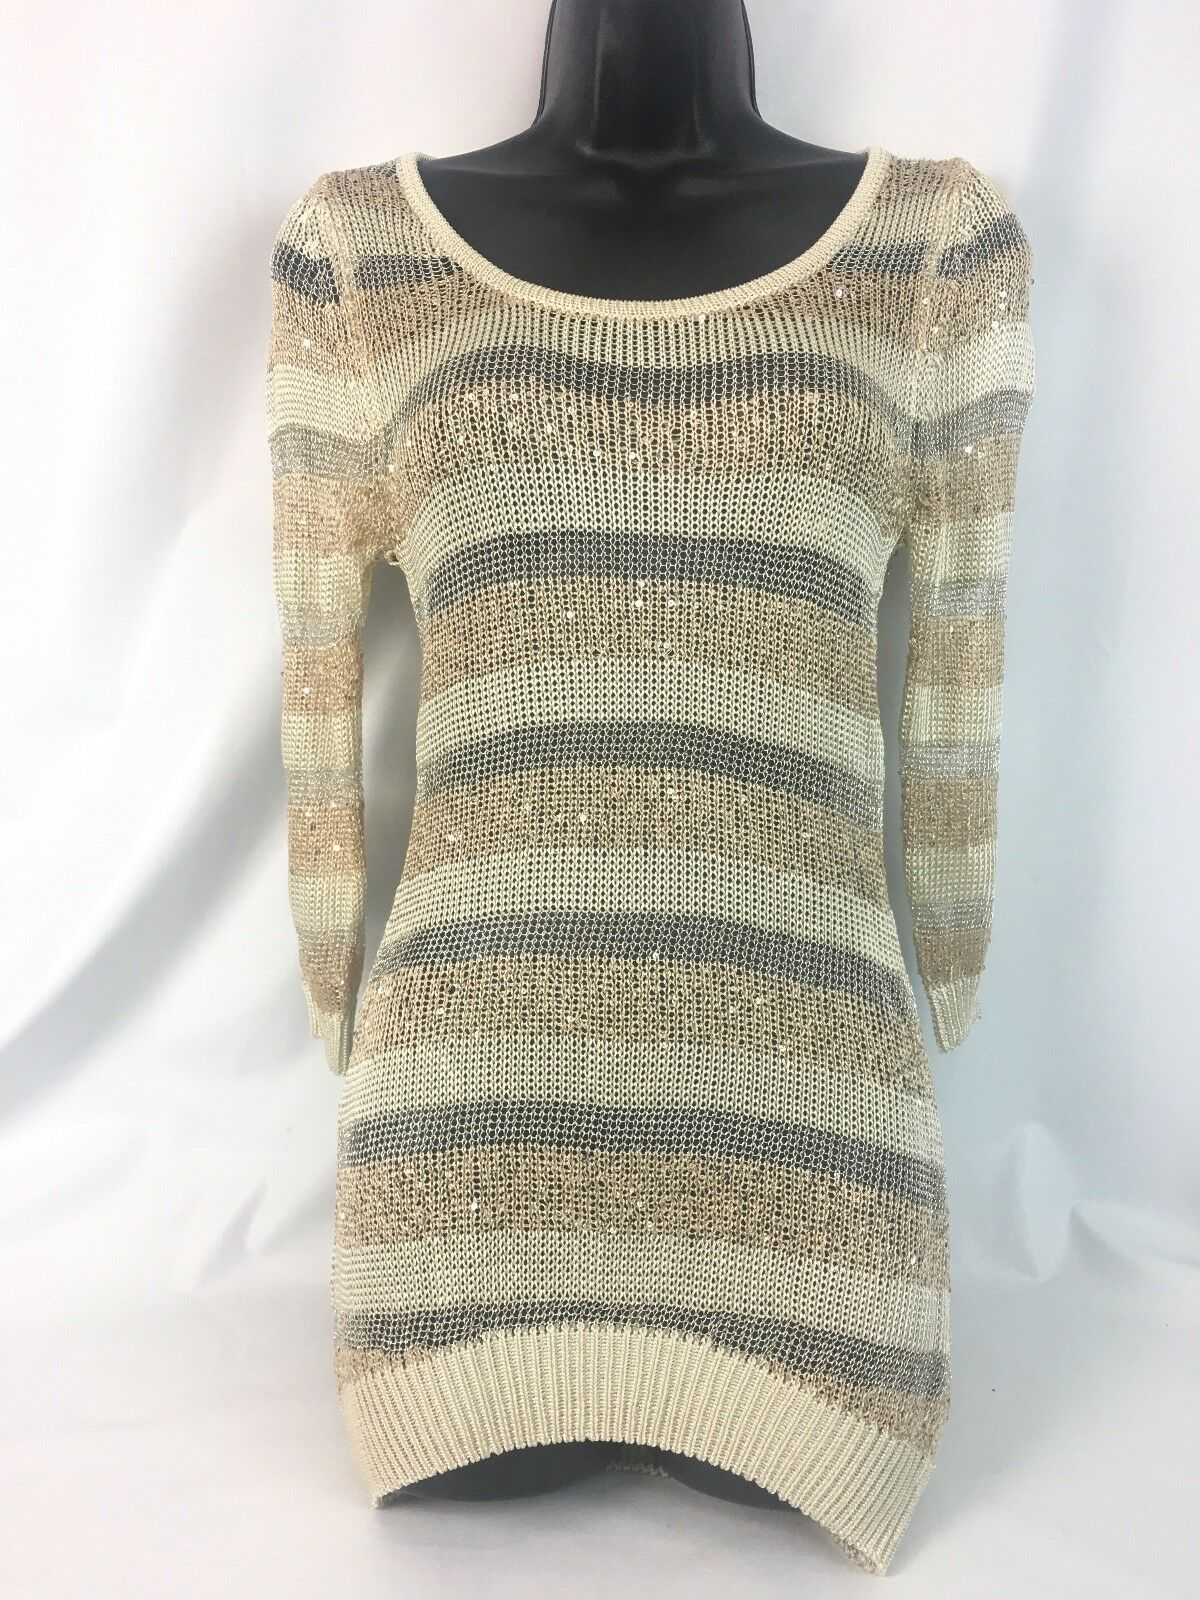 bebe  Stunning  Shogun Escape  Metallic Mix Yarn Stripe Sweater XS NWT 79.00